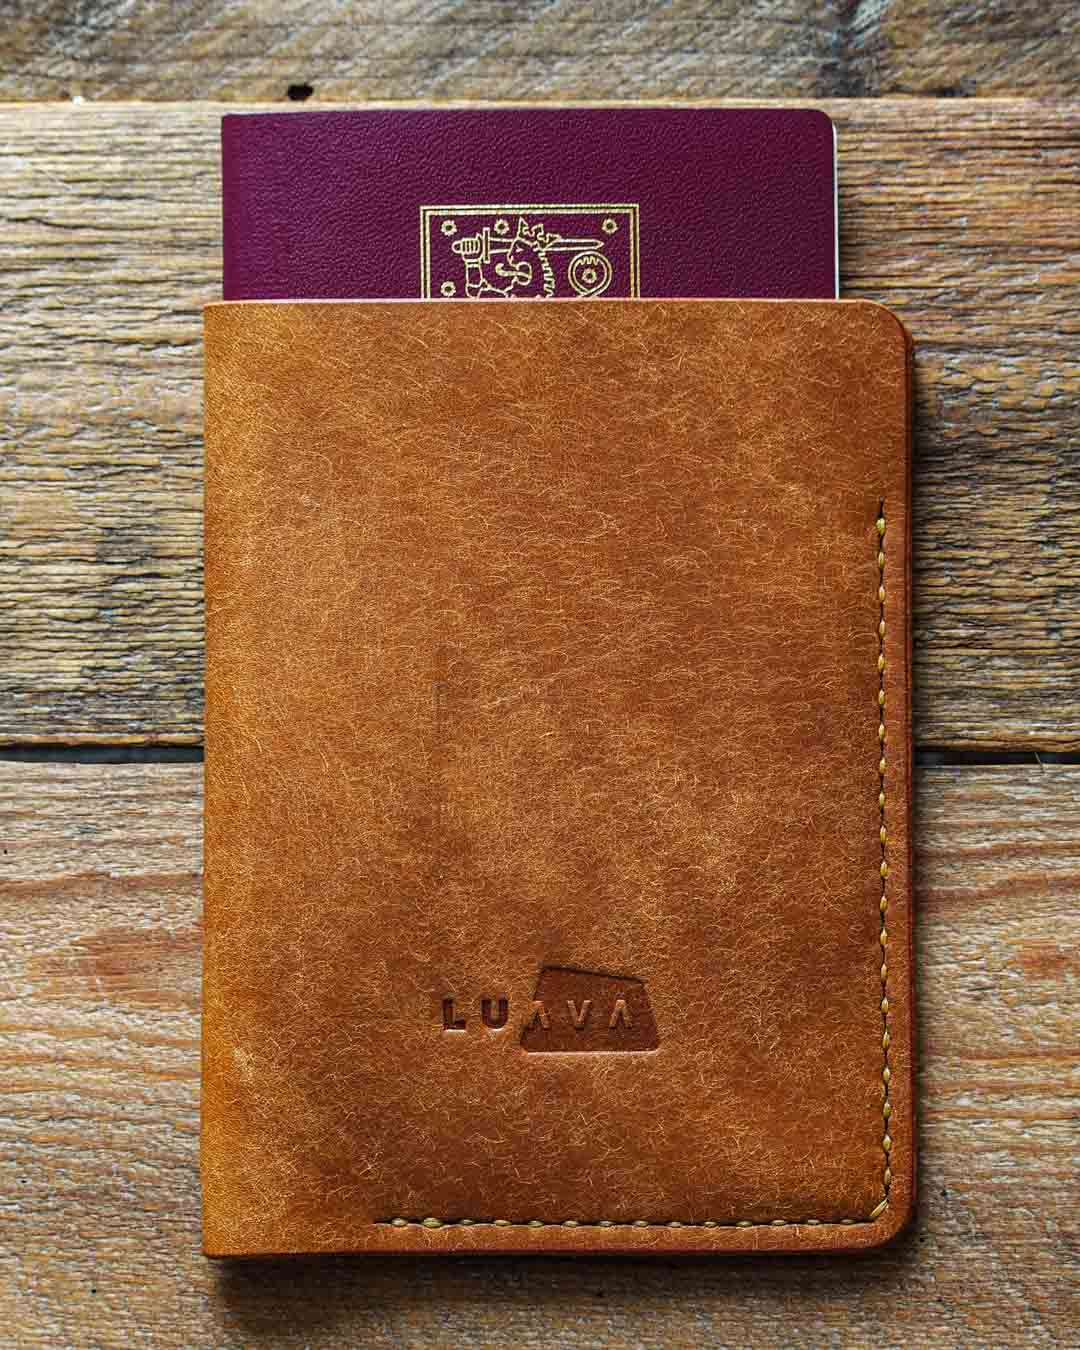 Luava handcrafted leather passport cover pueblo cognac in use